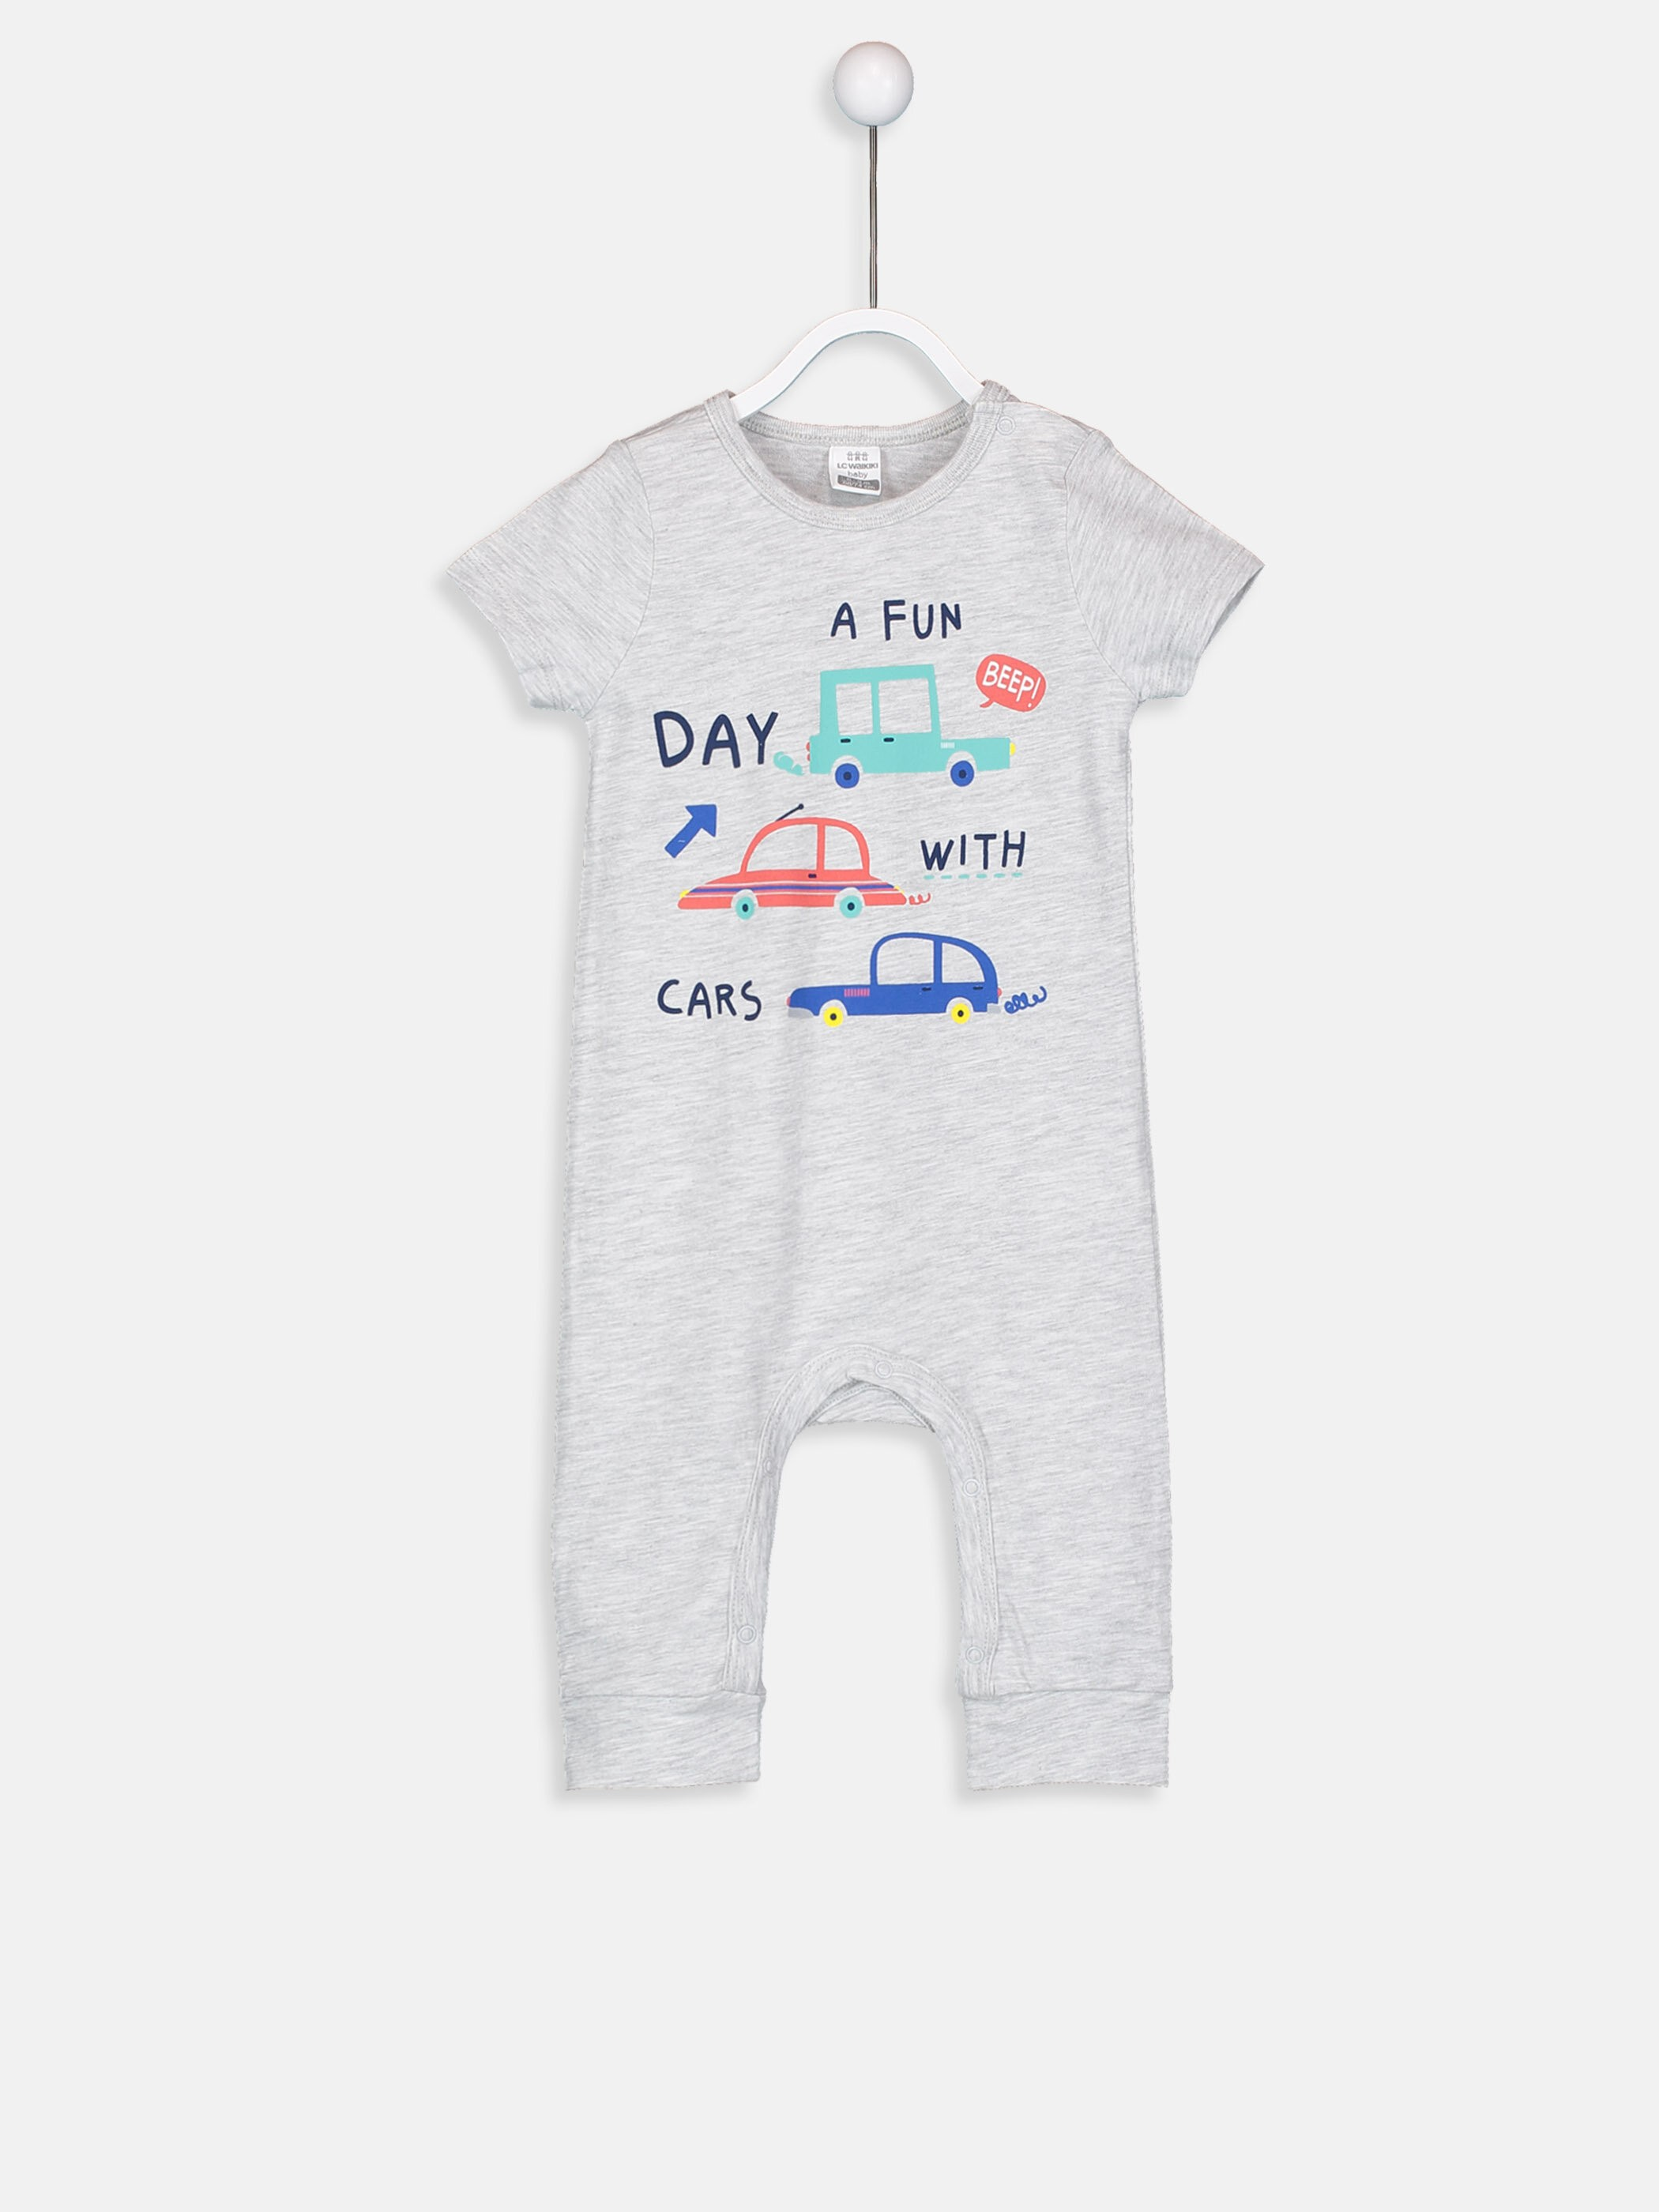 GREY - Baby Boy's Printed Cotton Jumpsuit - 9S9699Z1